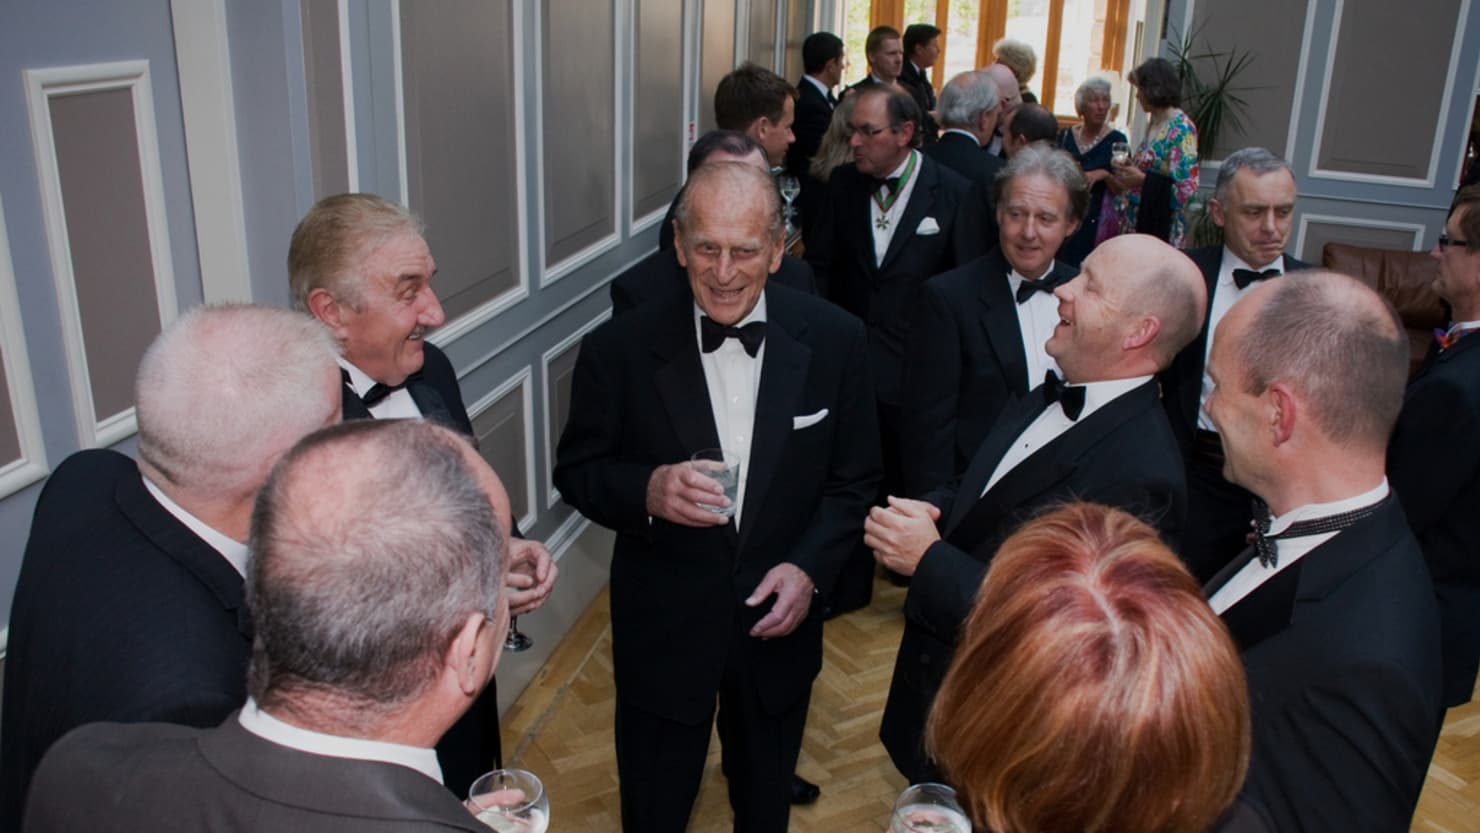 Prince Philip attends the 60th anniversary dinner for the Friends of Plymouth City Museum and Art Gallery in 2011